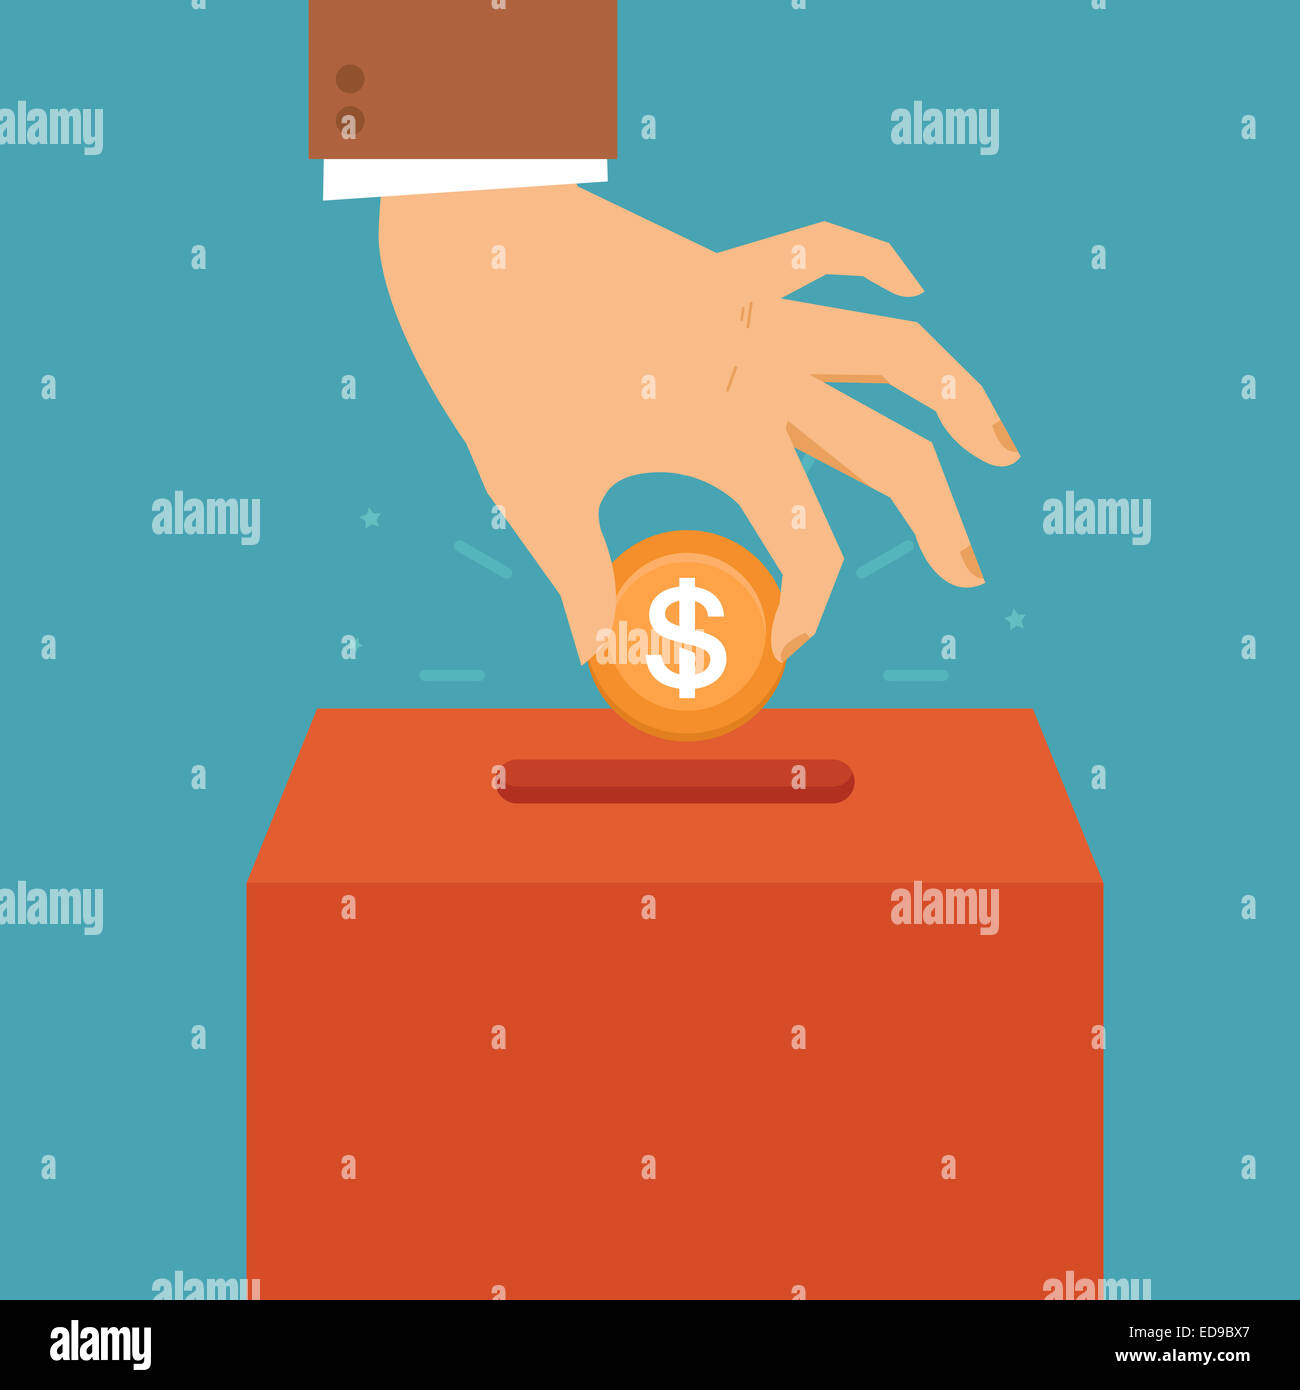 Donation concept in flat style - hand putting coin in the box for charity organization - Stock Image